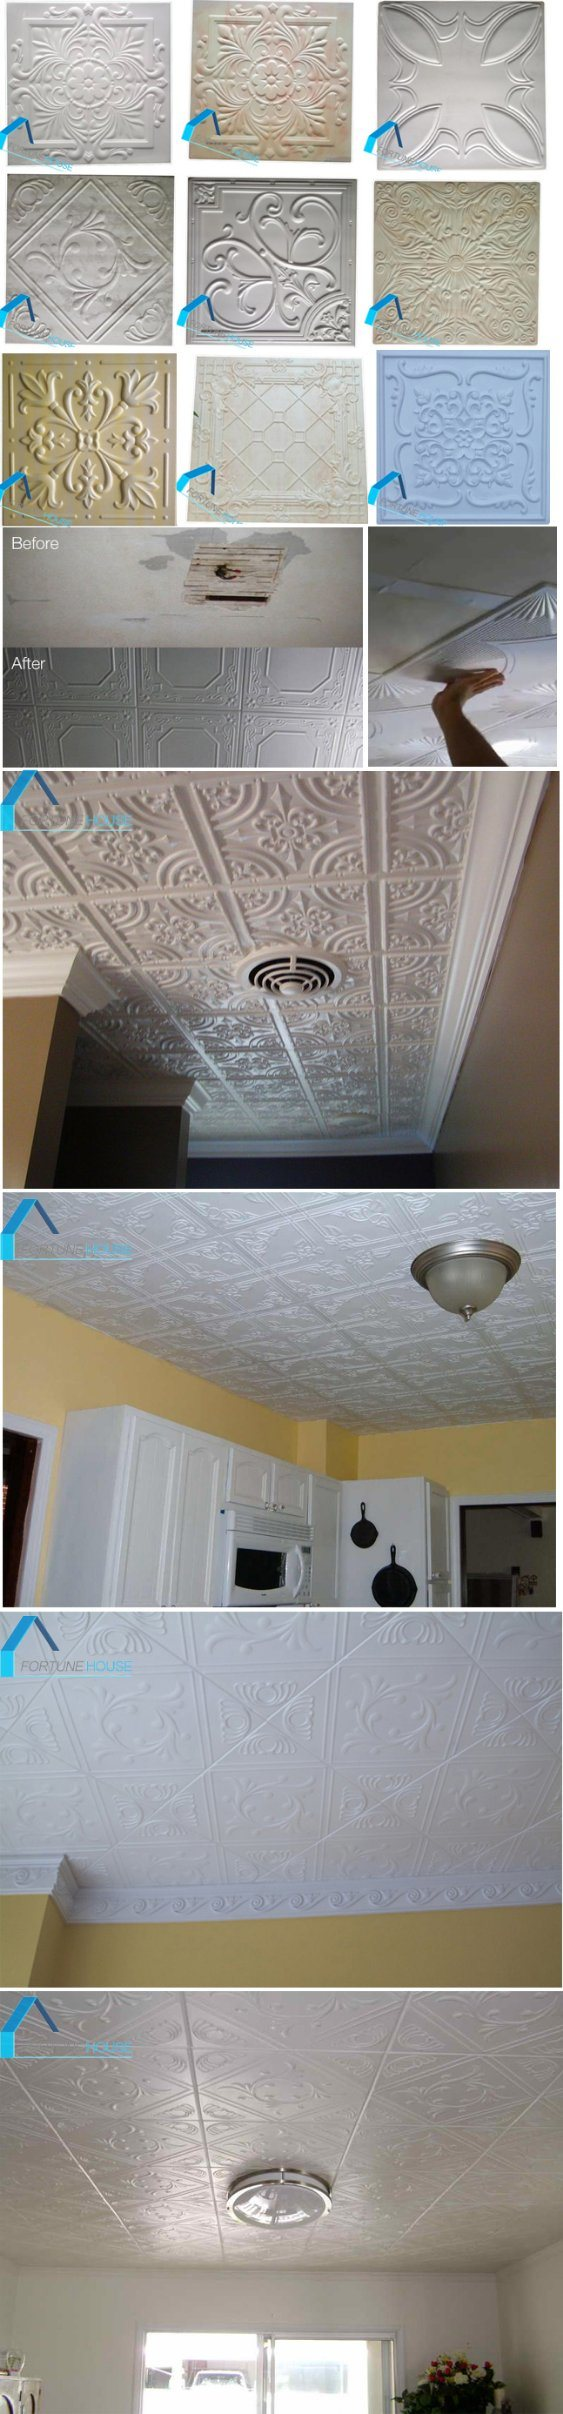 Smart expo decorative polystyrenestyrofoam ceiling tiles with low delivery time 1x20ft container with 30days dailygadgetfo Images